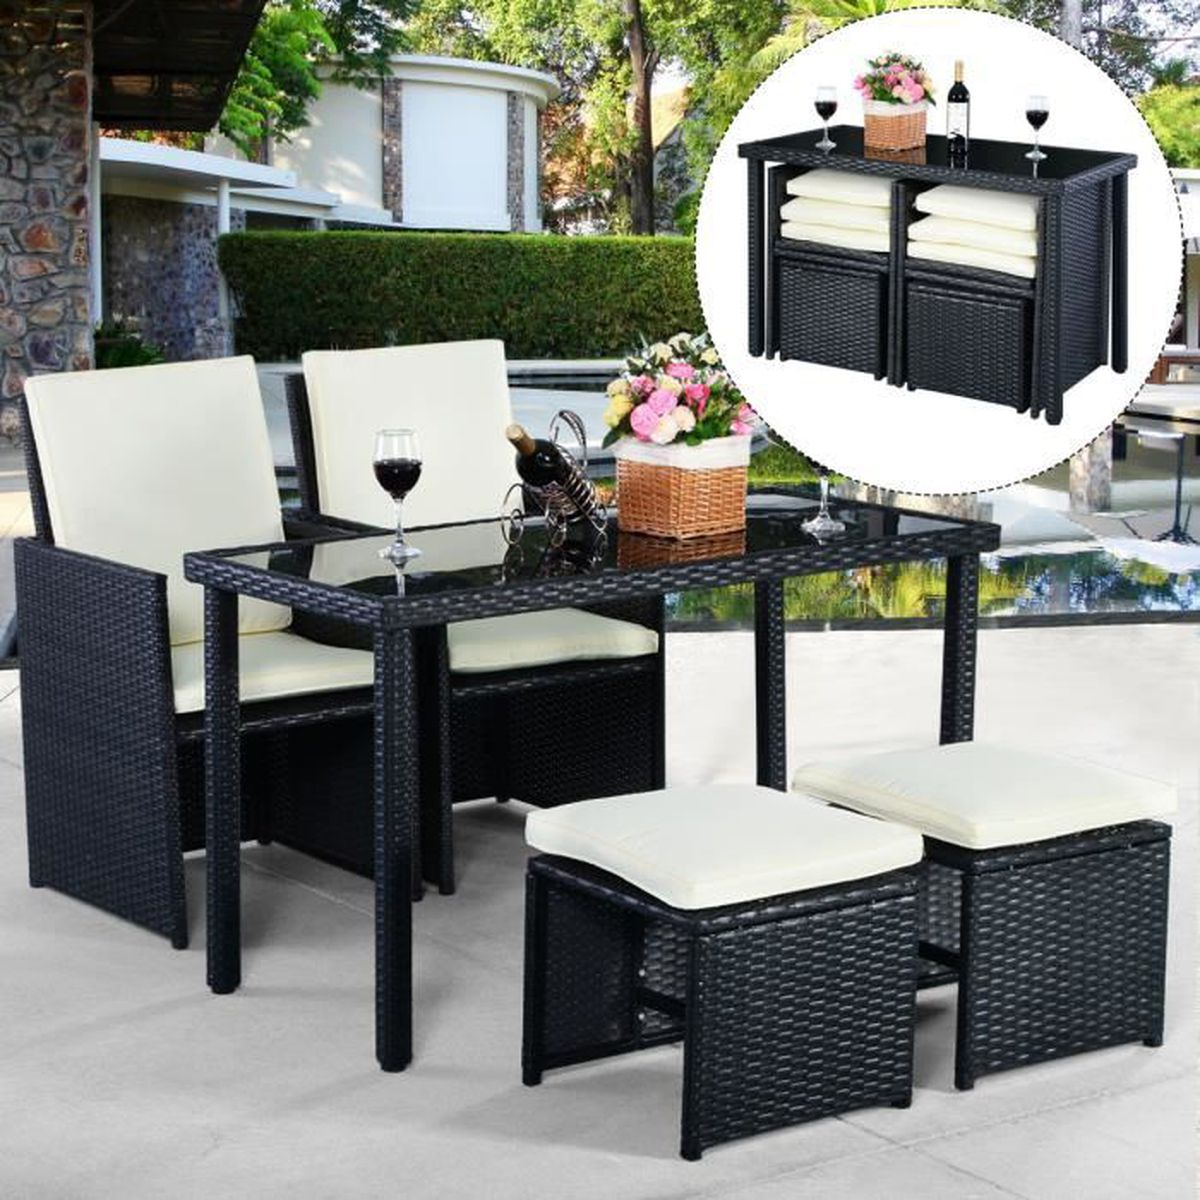 5pcs ensemble salon de jardin si ges table tress e meubles. Black Bedroom Furniture Sets. Home Design Ideas